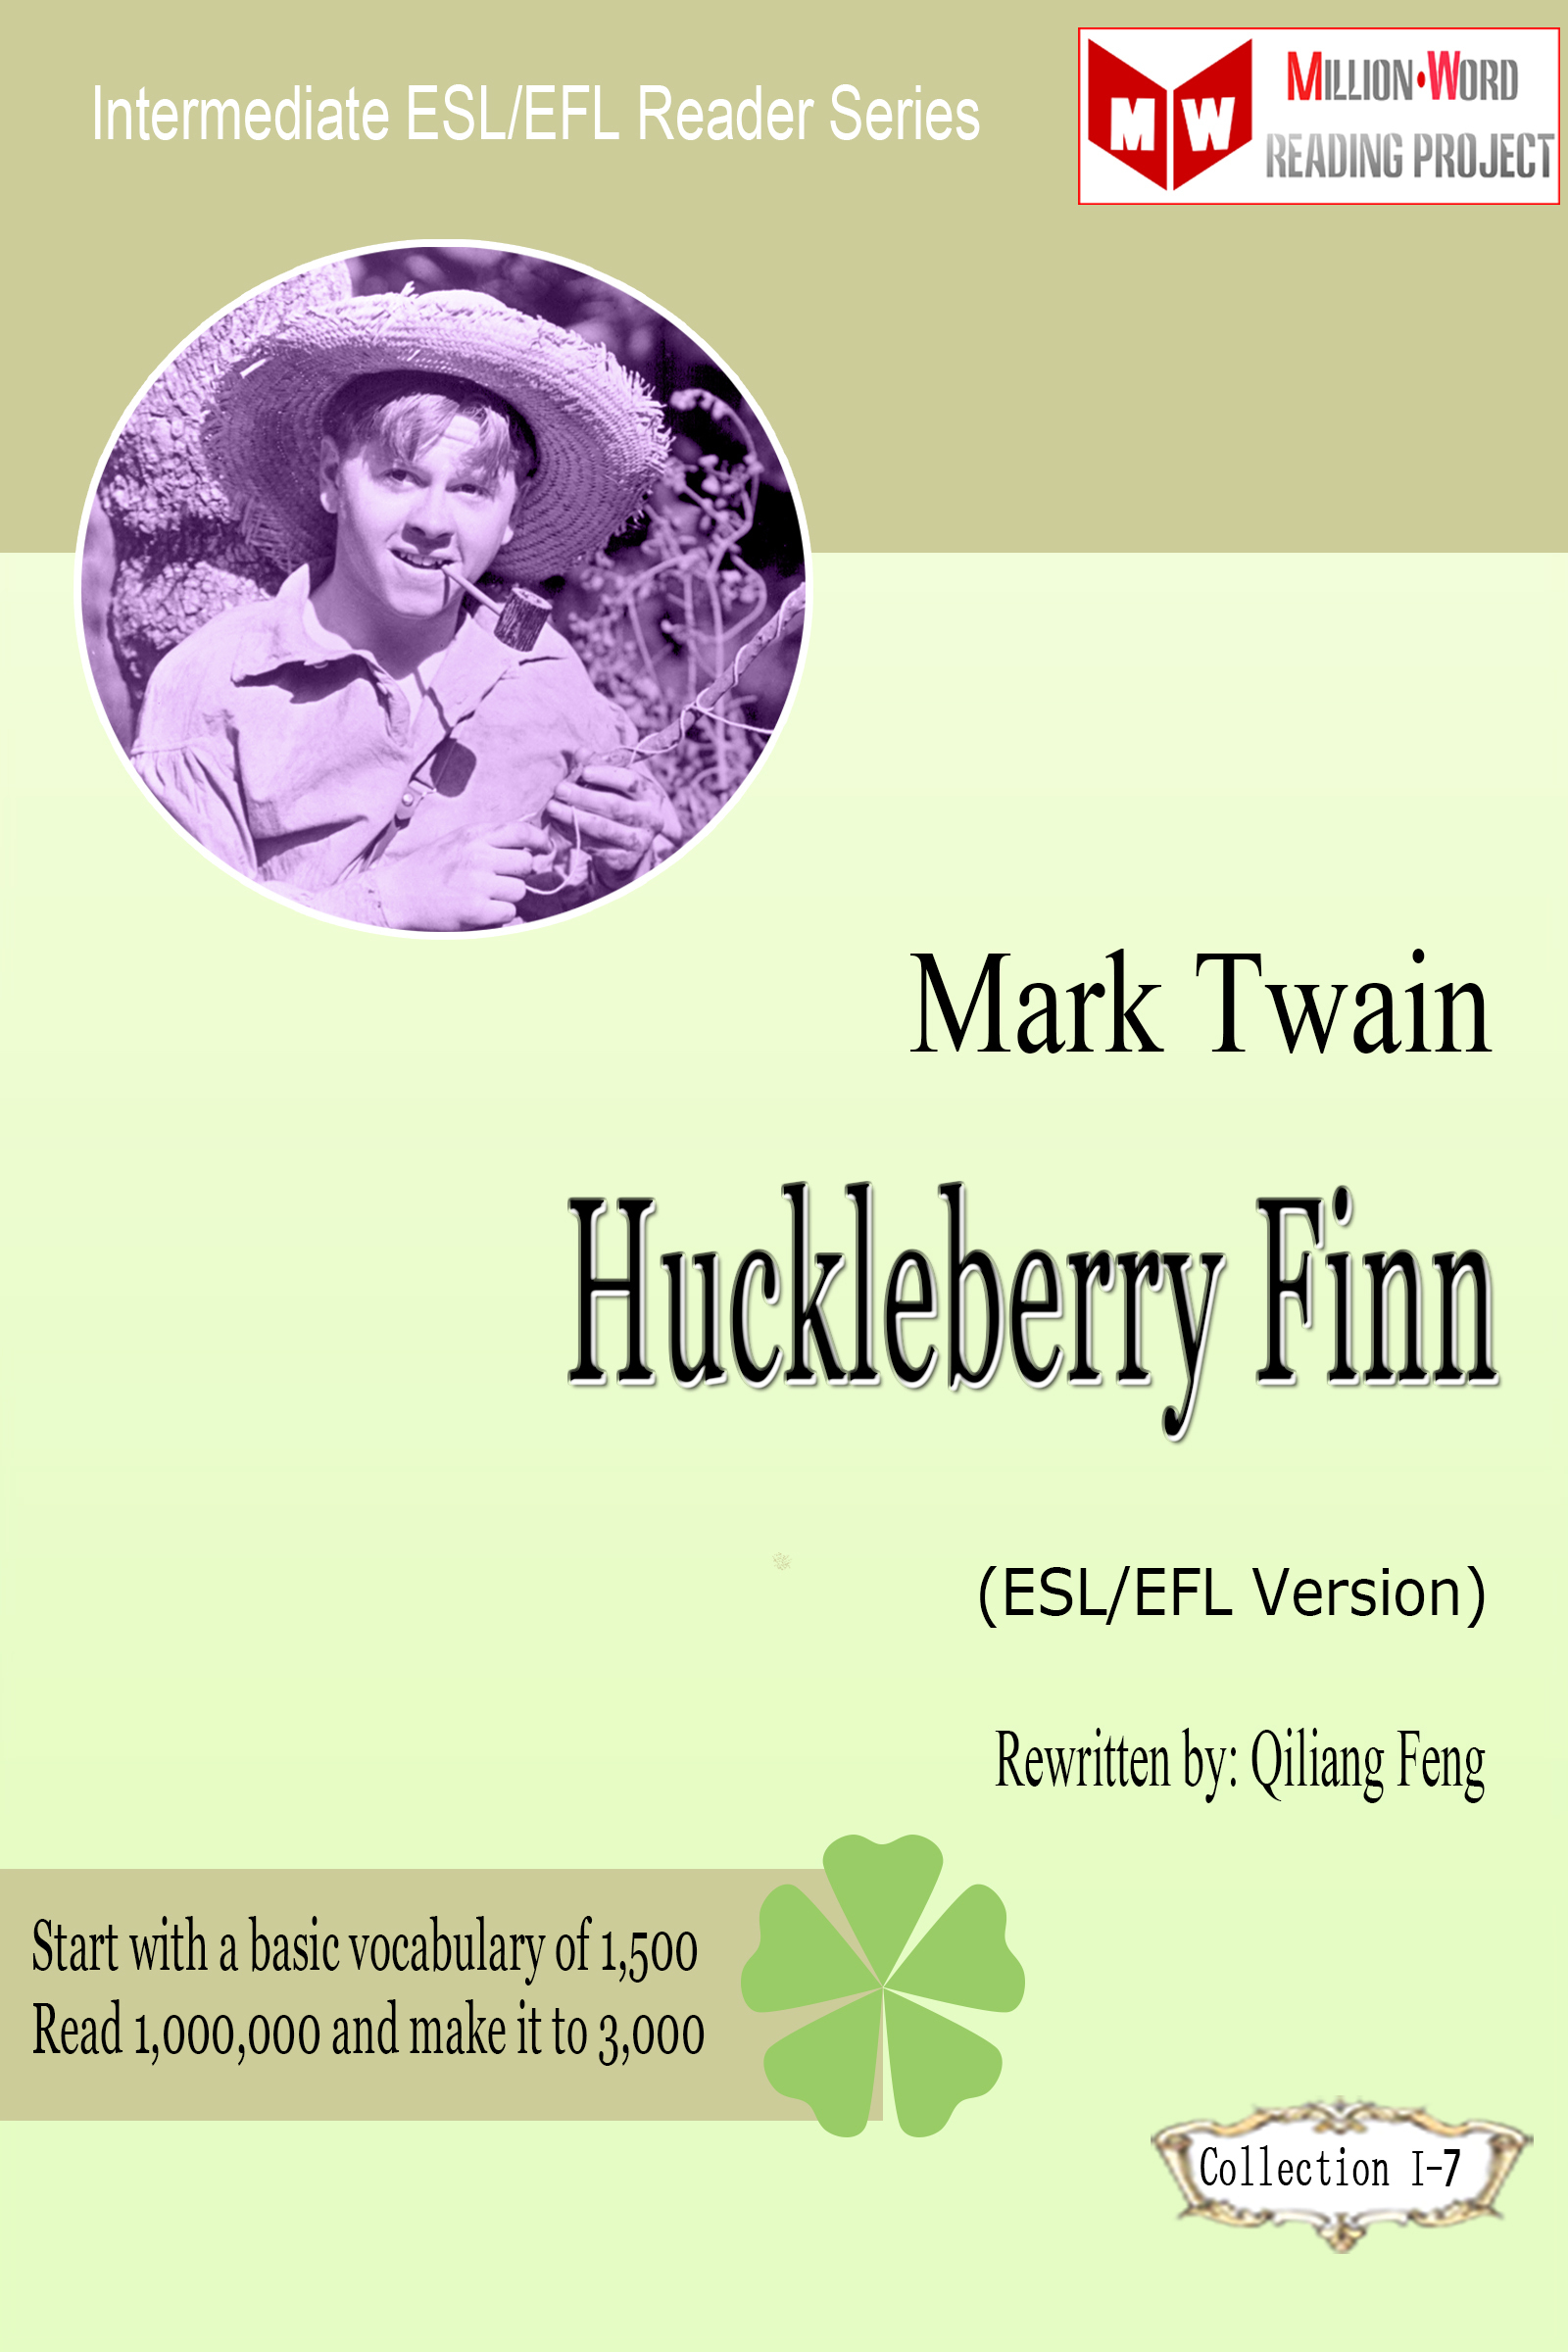 Mark Twain Huckleberry Finn By Qiliang Feng